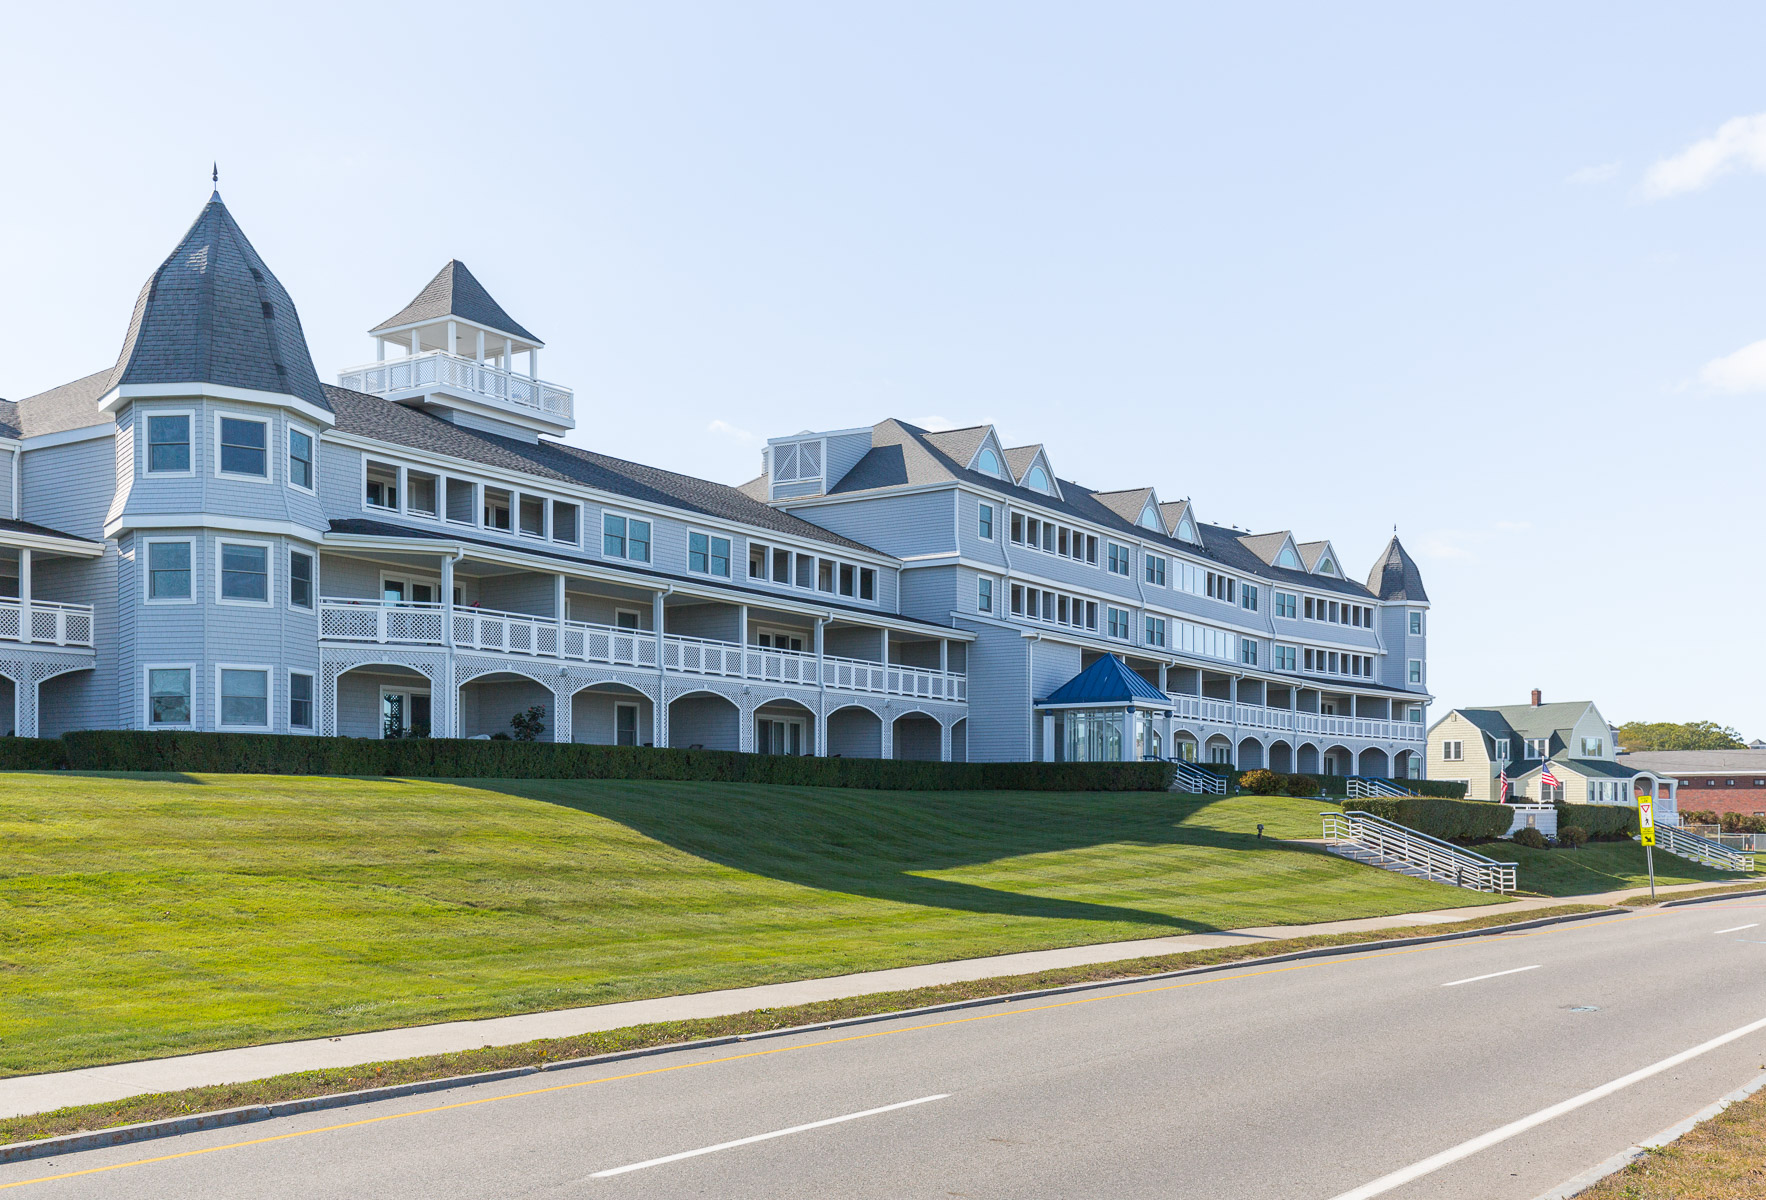 Condominium for Sale at Ocean House Condo 31 Ocean Avenue #414 York, Maine 03909 United States